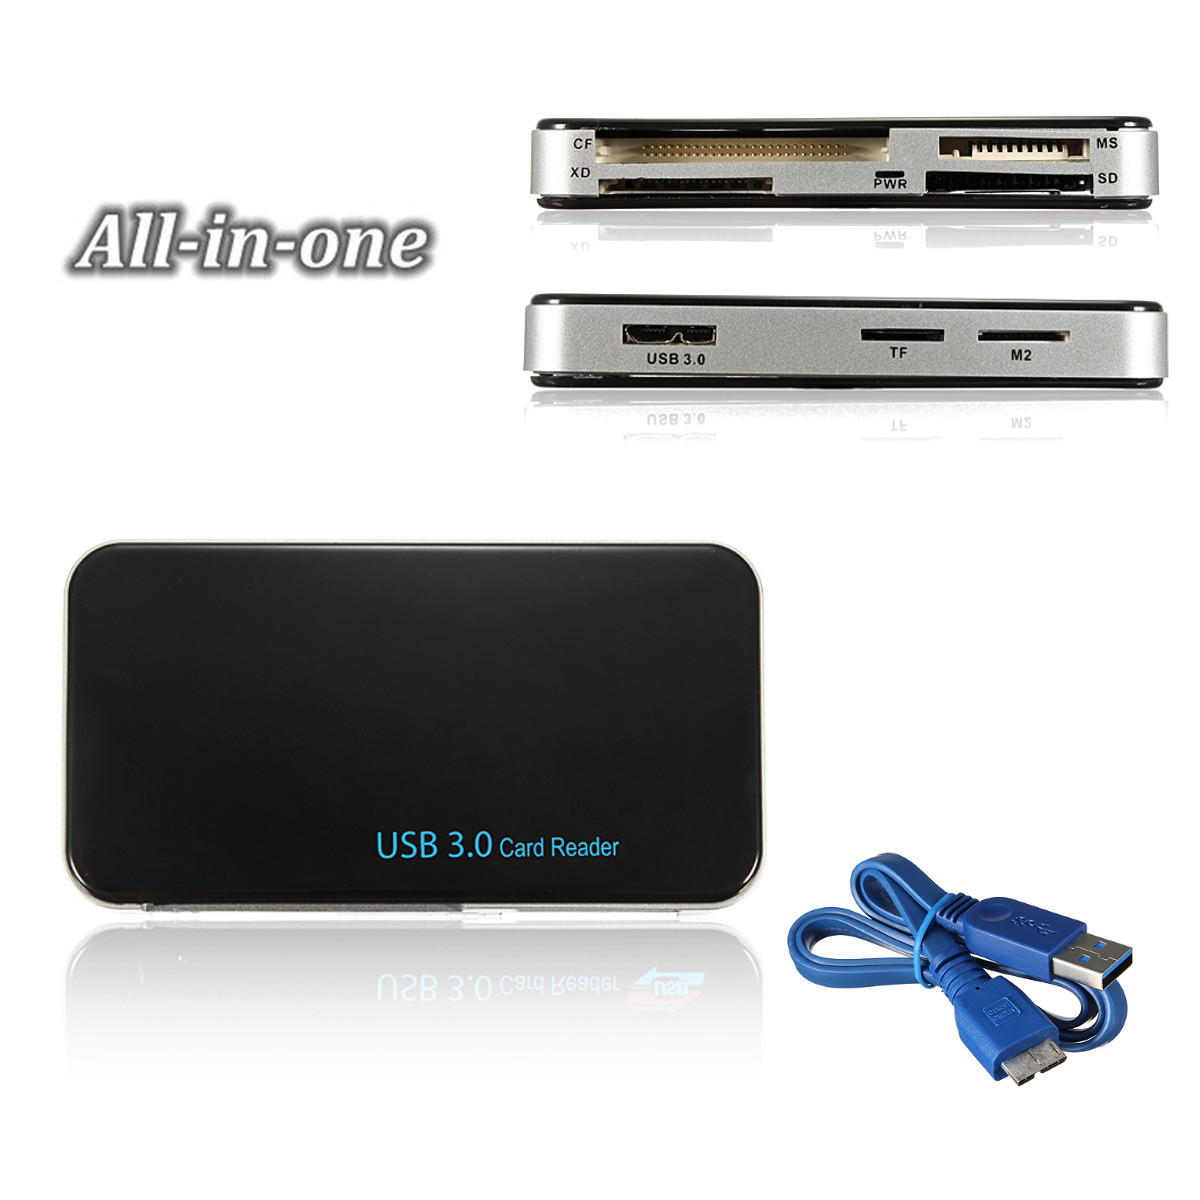 USB 3.0 Compact Flash Multi Card Reader All in 1 CF Adapter Micro SD MS XD 5Gbps